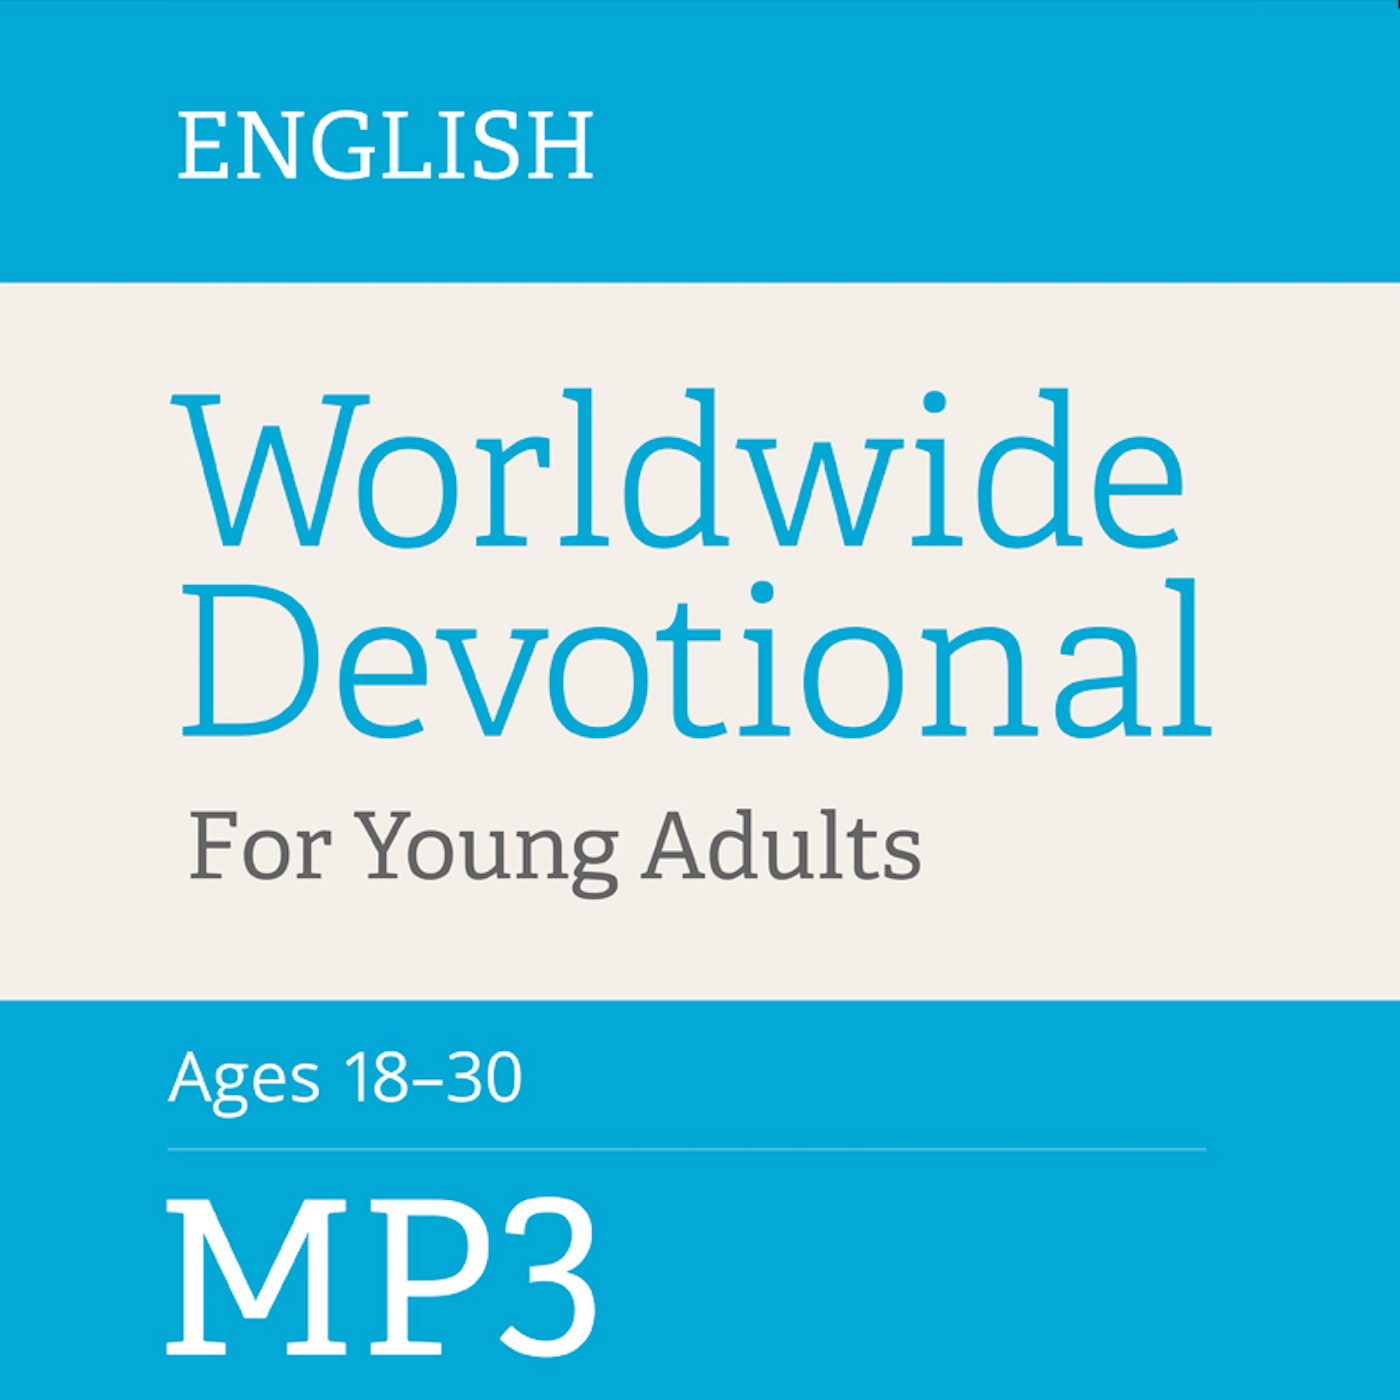 Worldwide Devotional For Young Adults | MP3 | ENGLISH